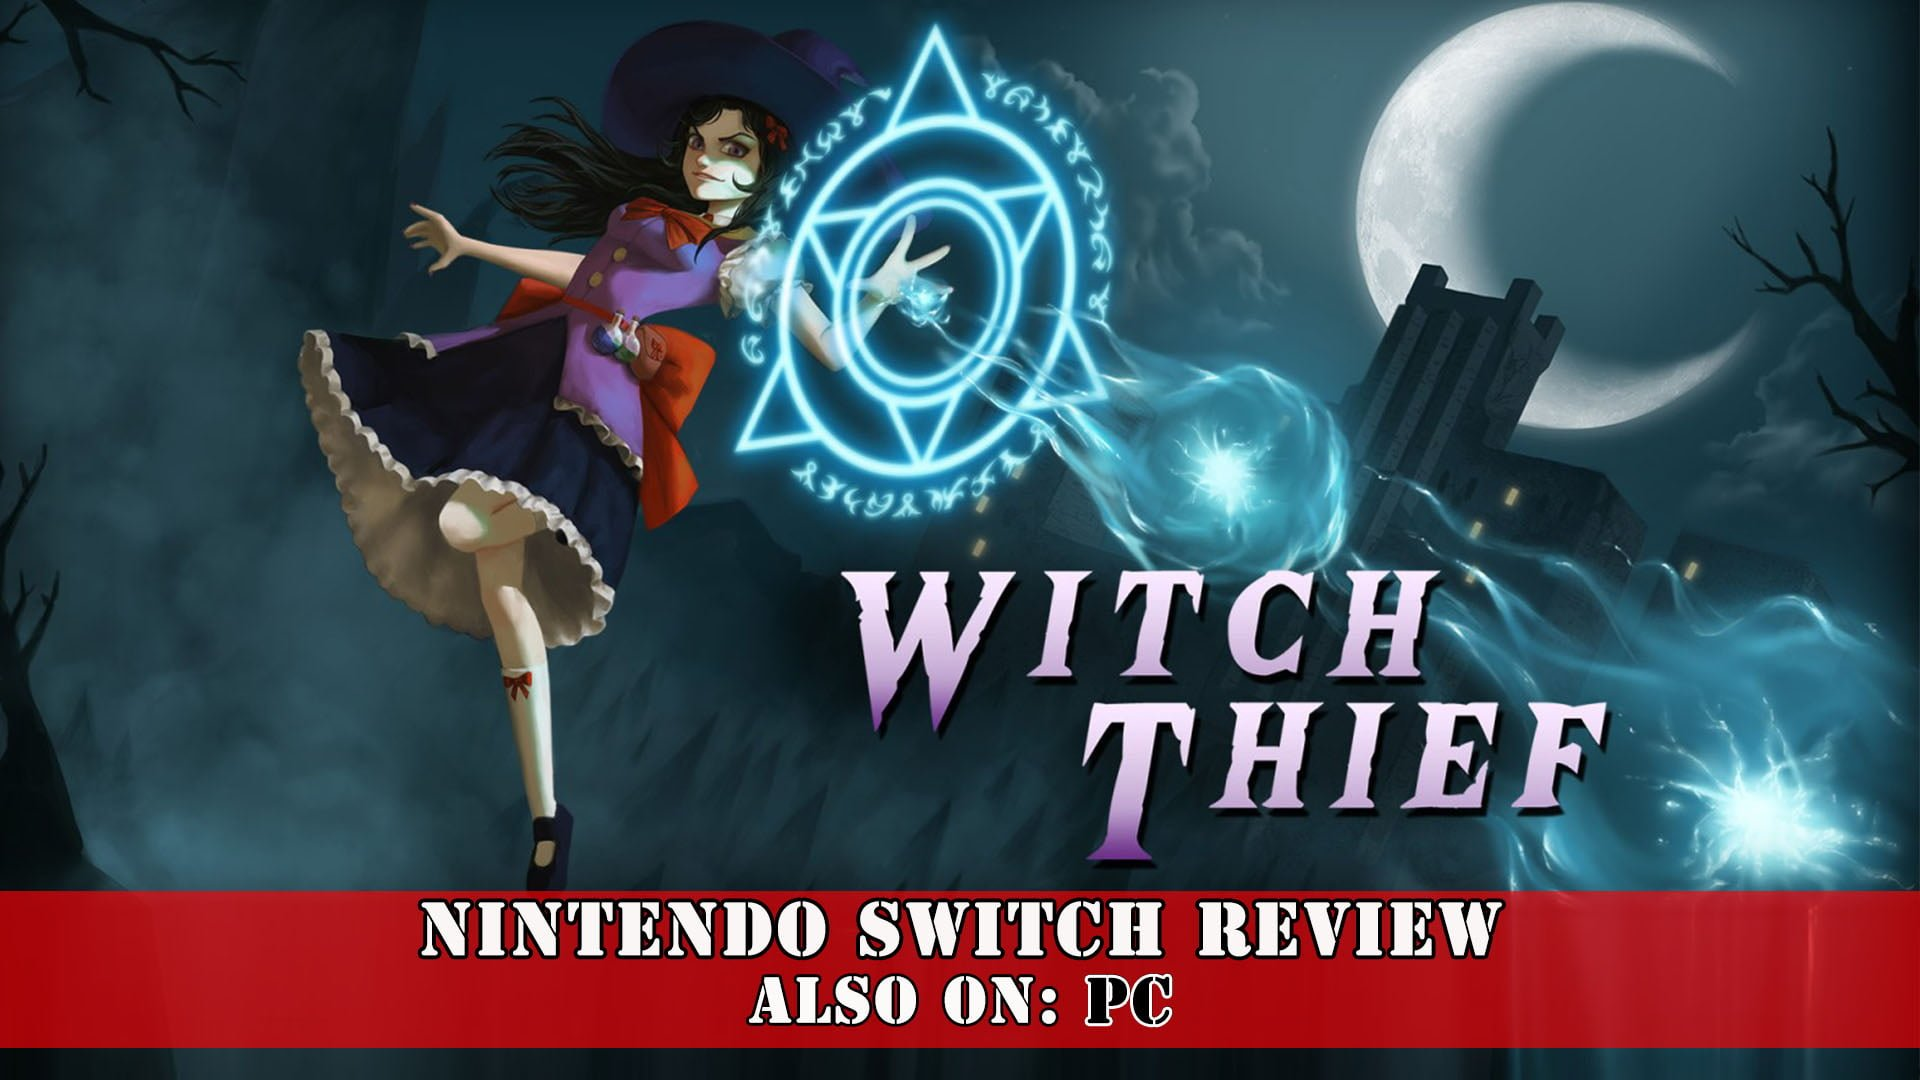 Witch Thief (Nintendo Switch) Review